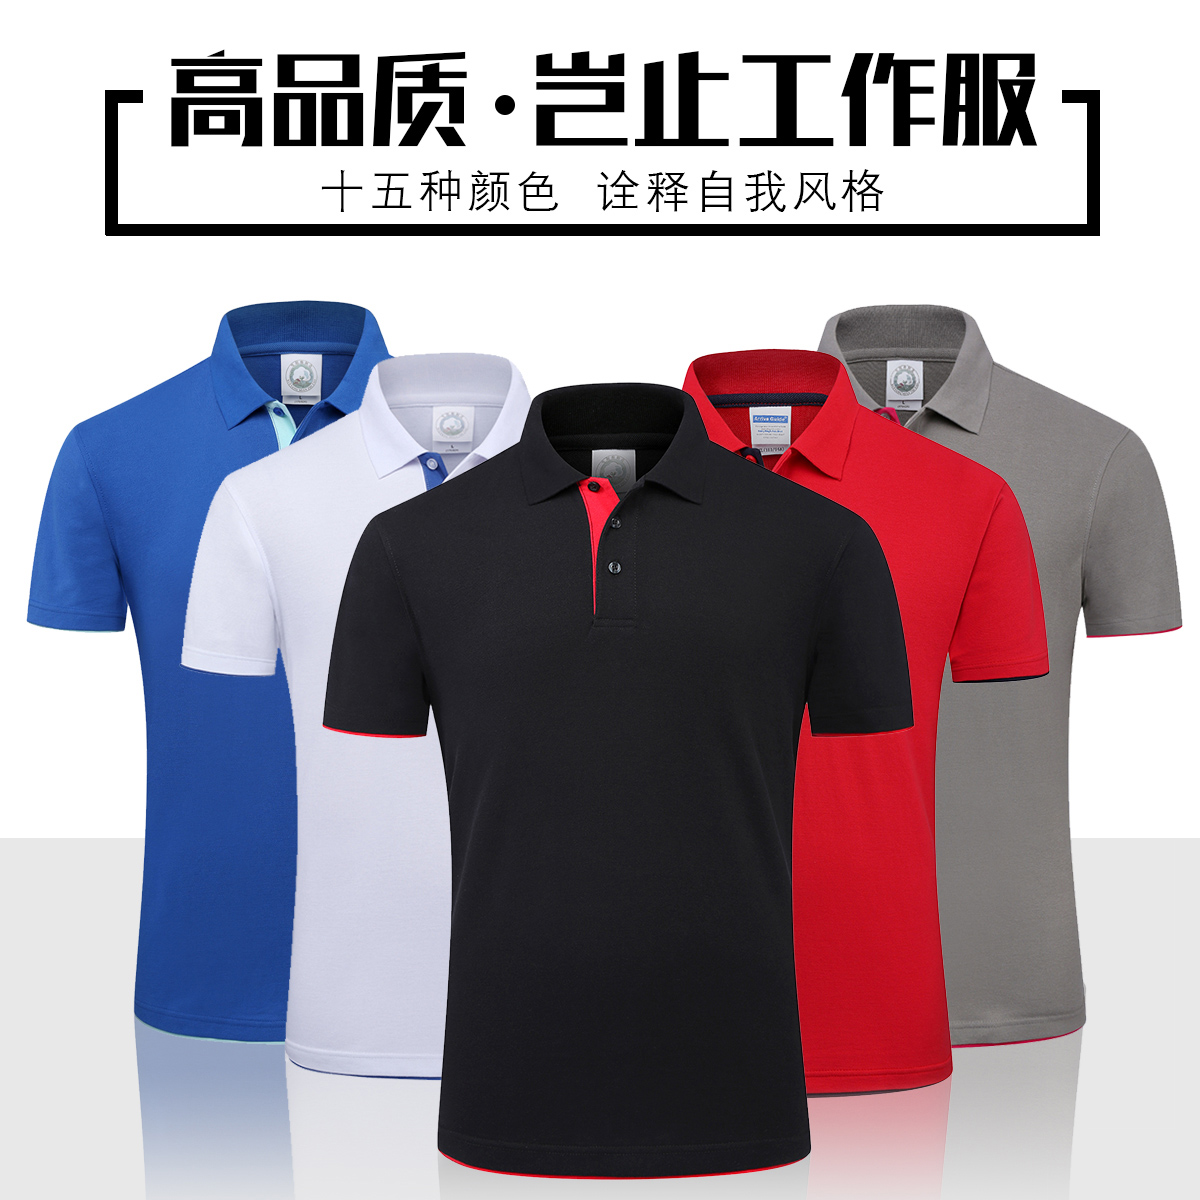 Custom Polo Work Shirts - Prism Contractors & Engineers